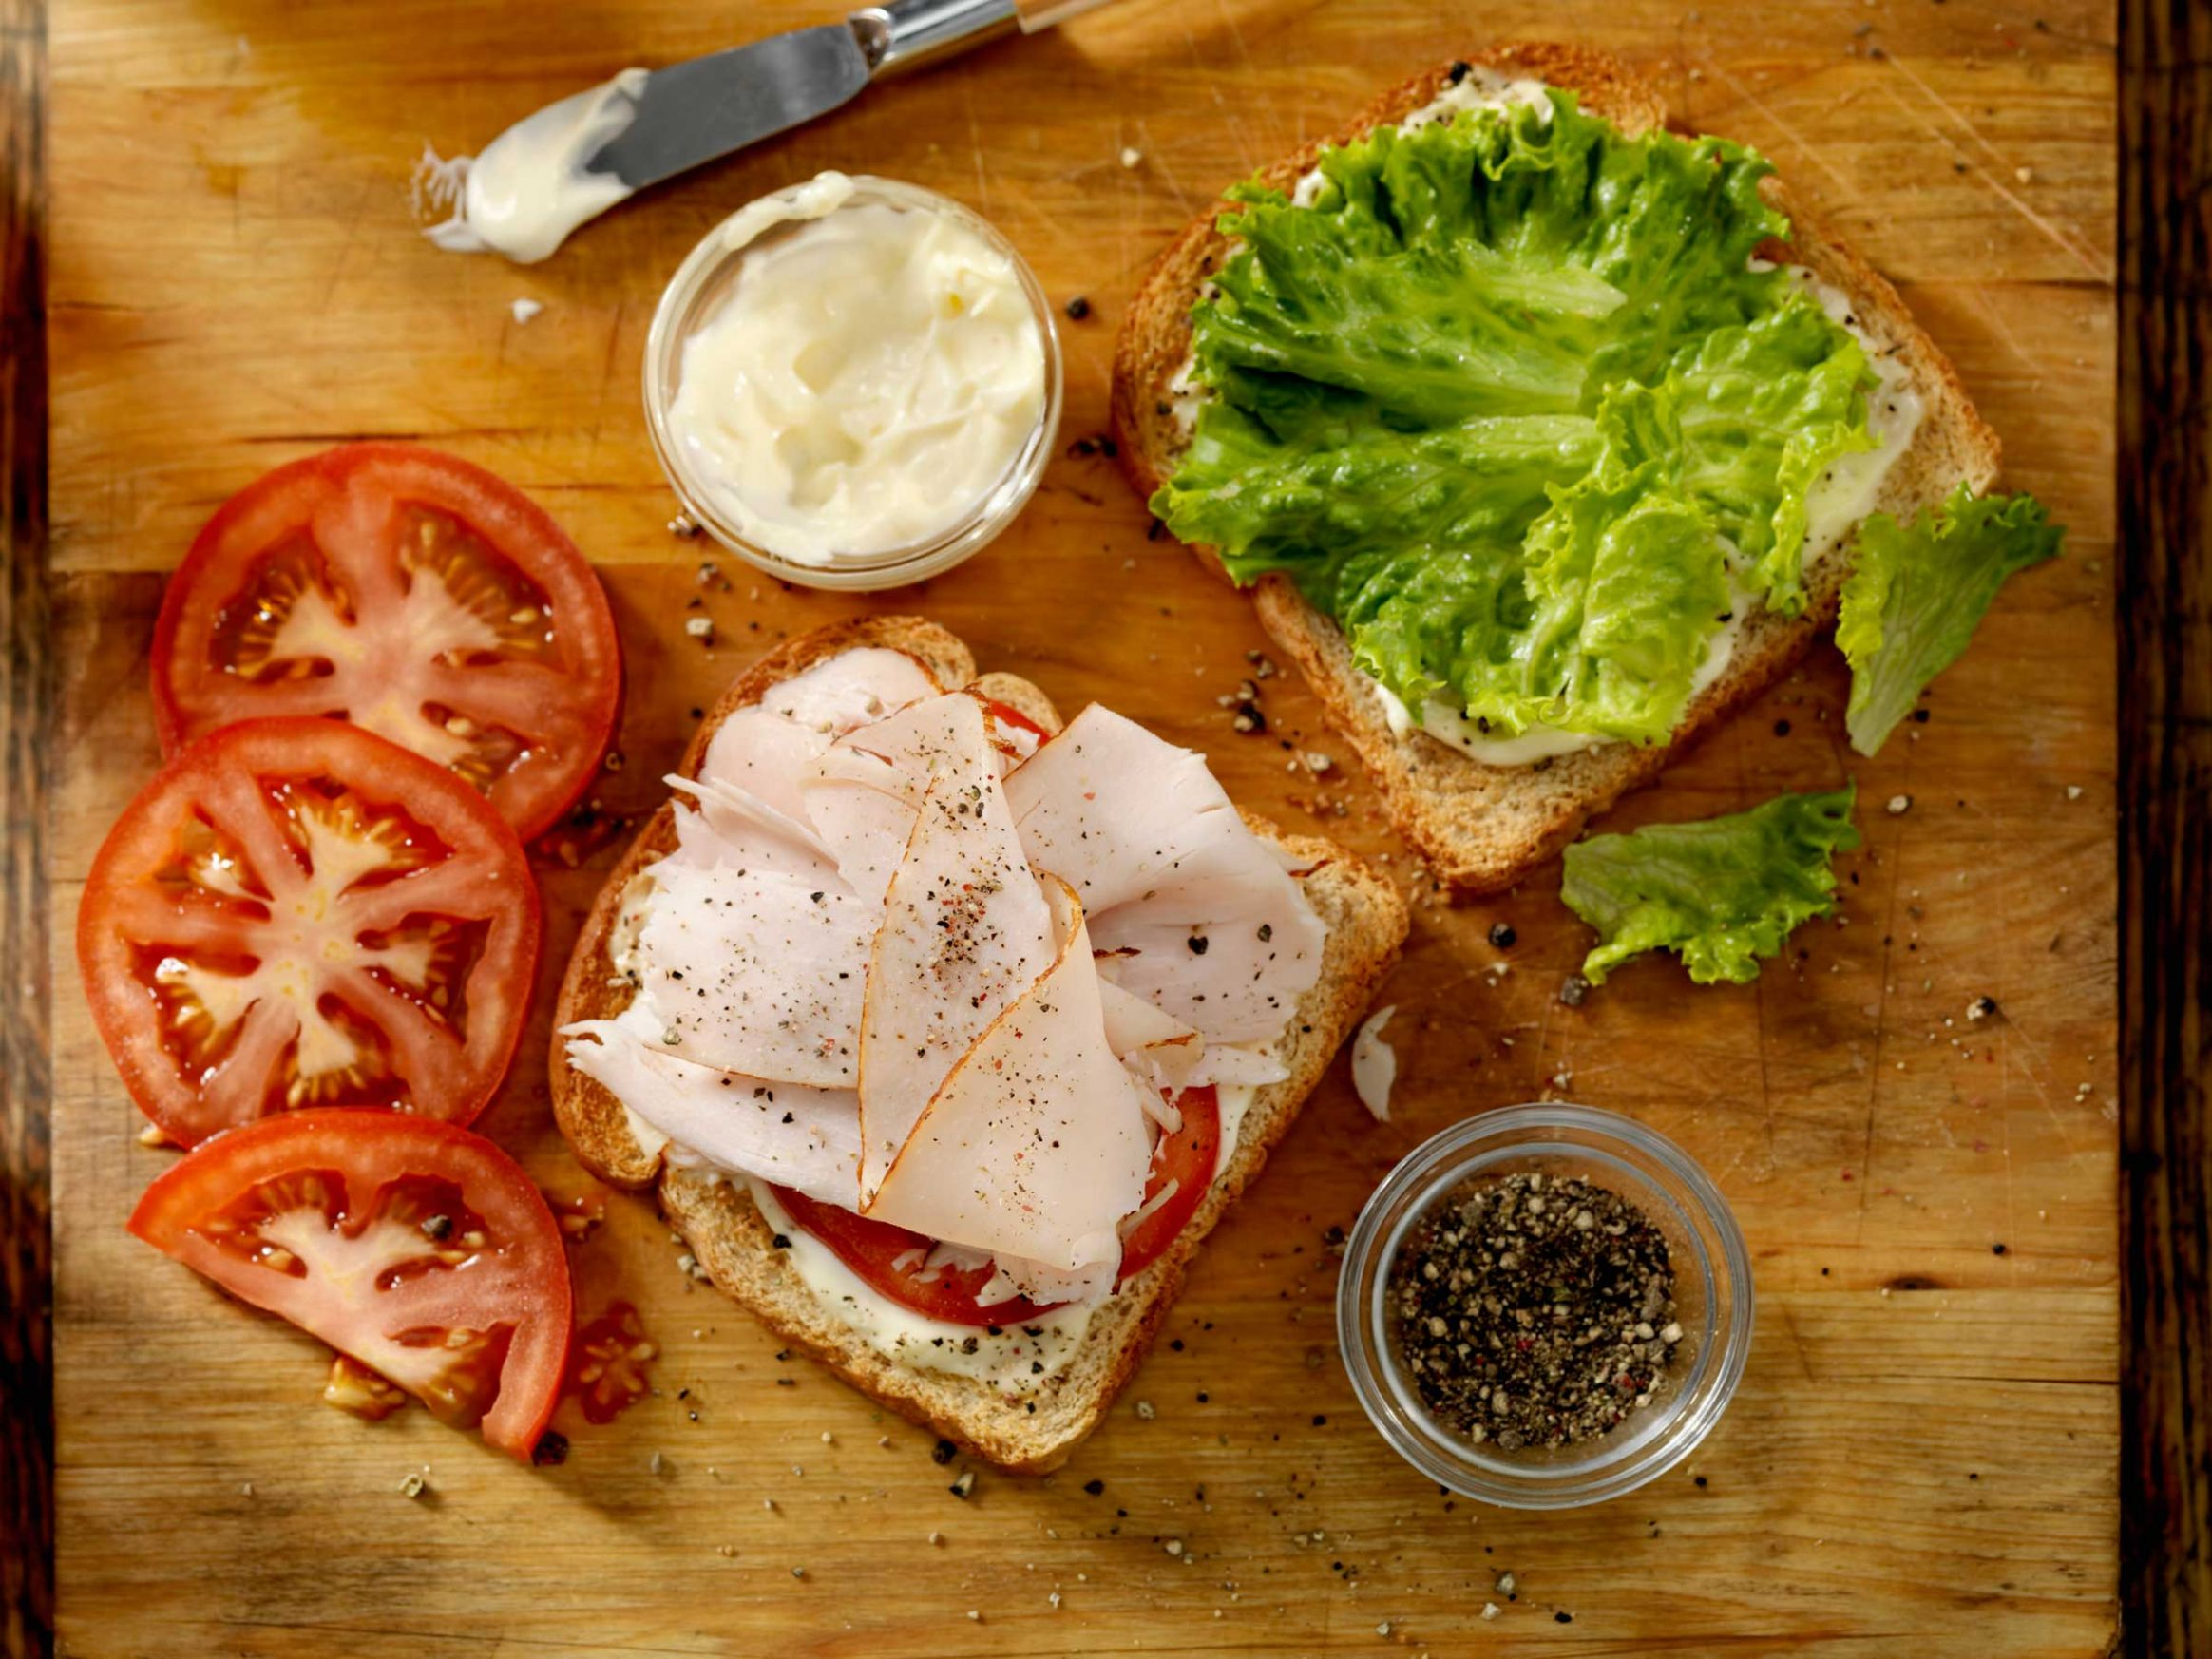 Healthy Sandwiches for Weight Loss | The Healthy - Healthy Recipes For Weight Loss Nz